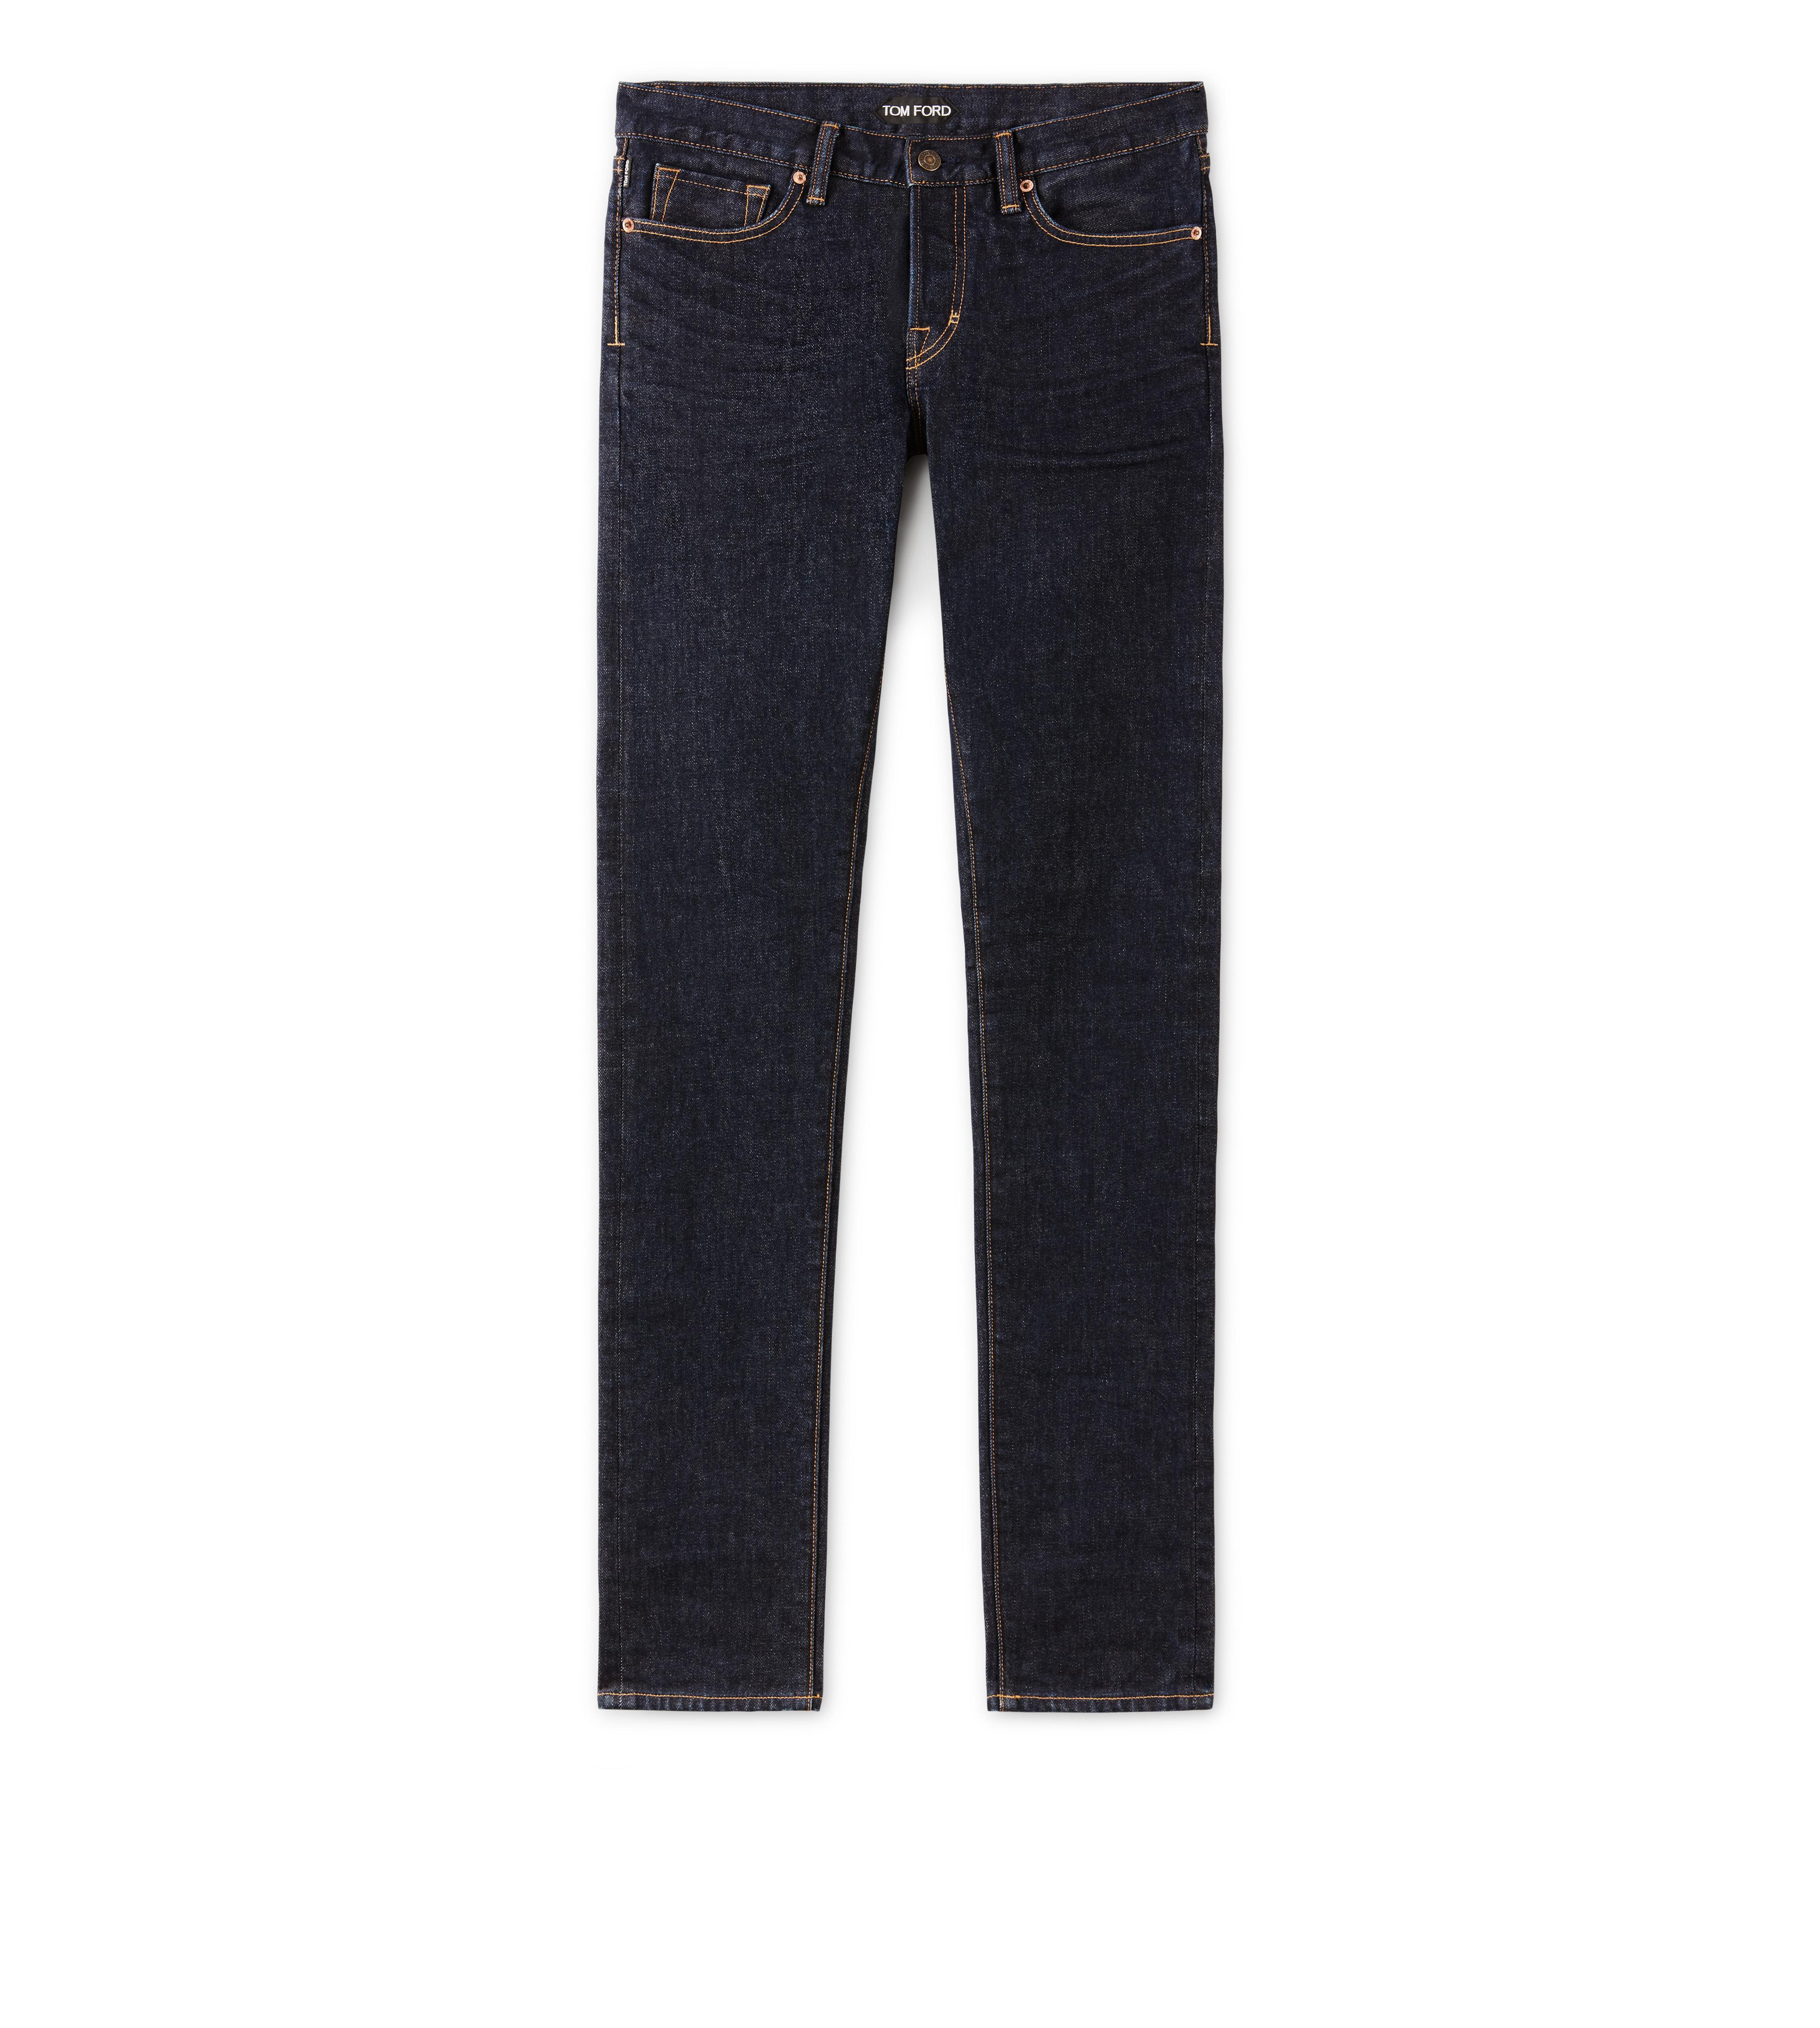 SLIM FIT BLUE JEANS A thumbnail